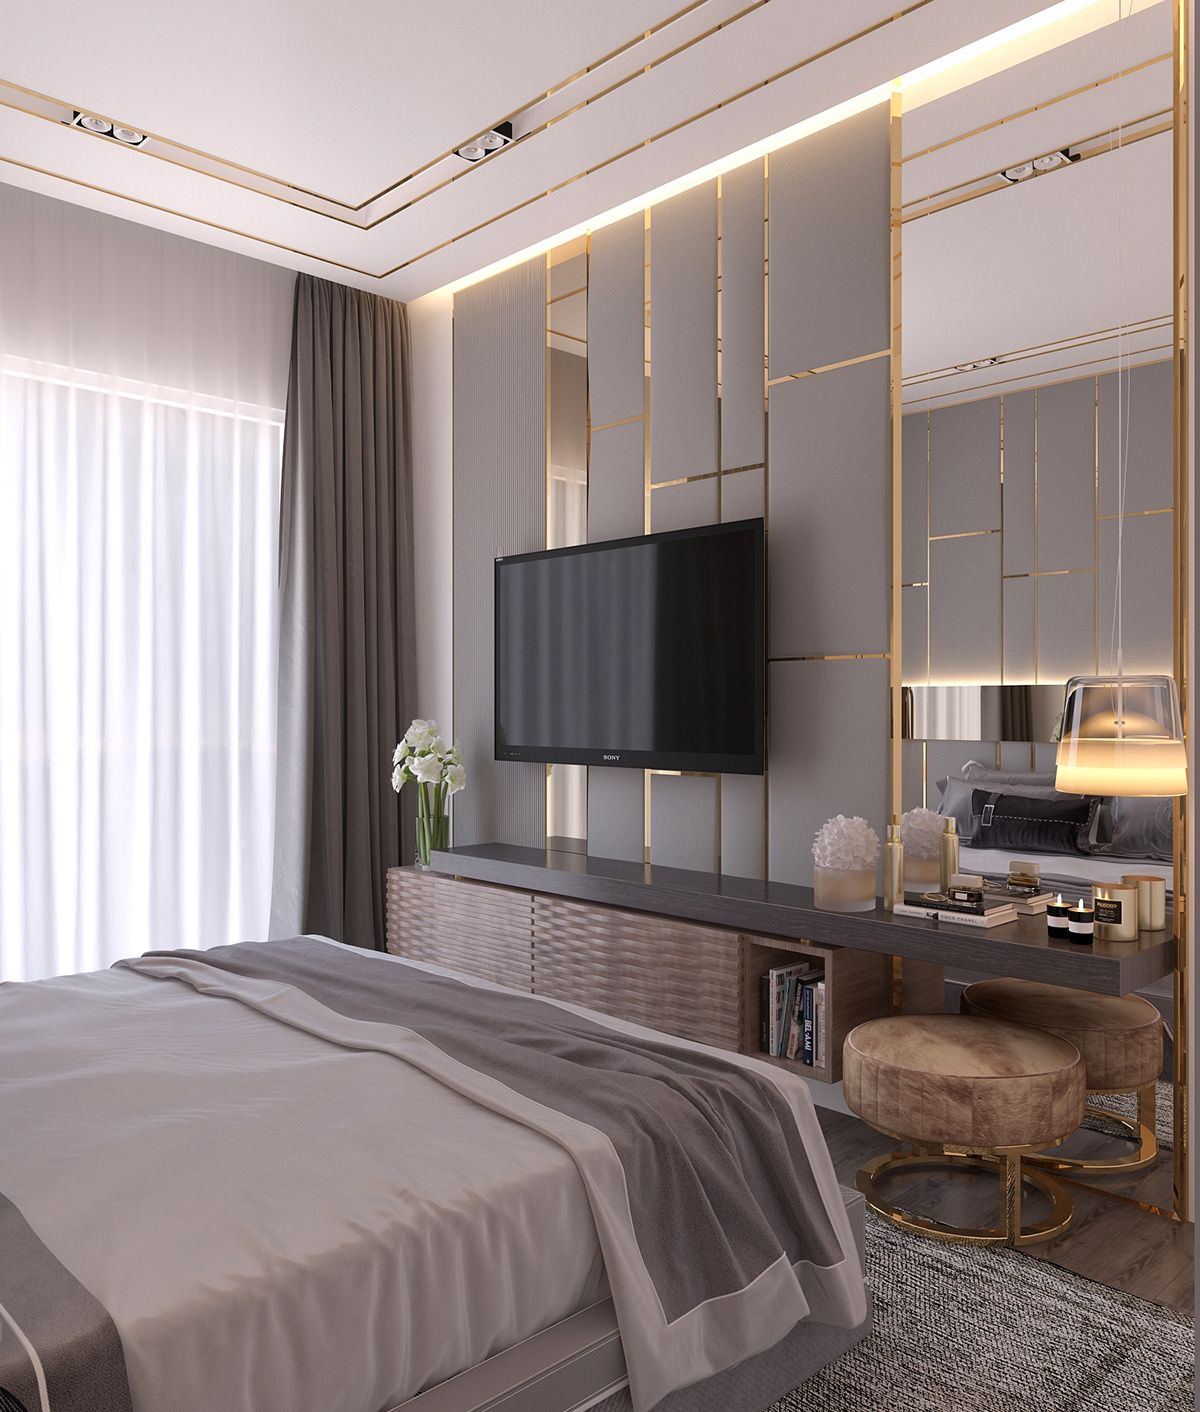 21 Master Bedroom Interior Designs Decorating Ideas: Modern Style Bedroom *Dubai Project On Behance